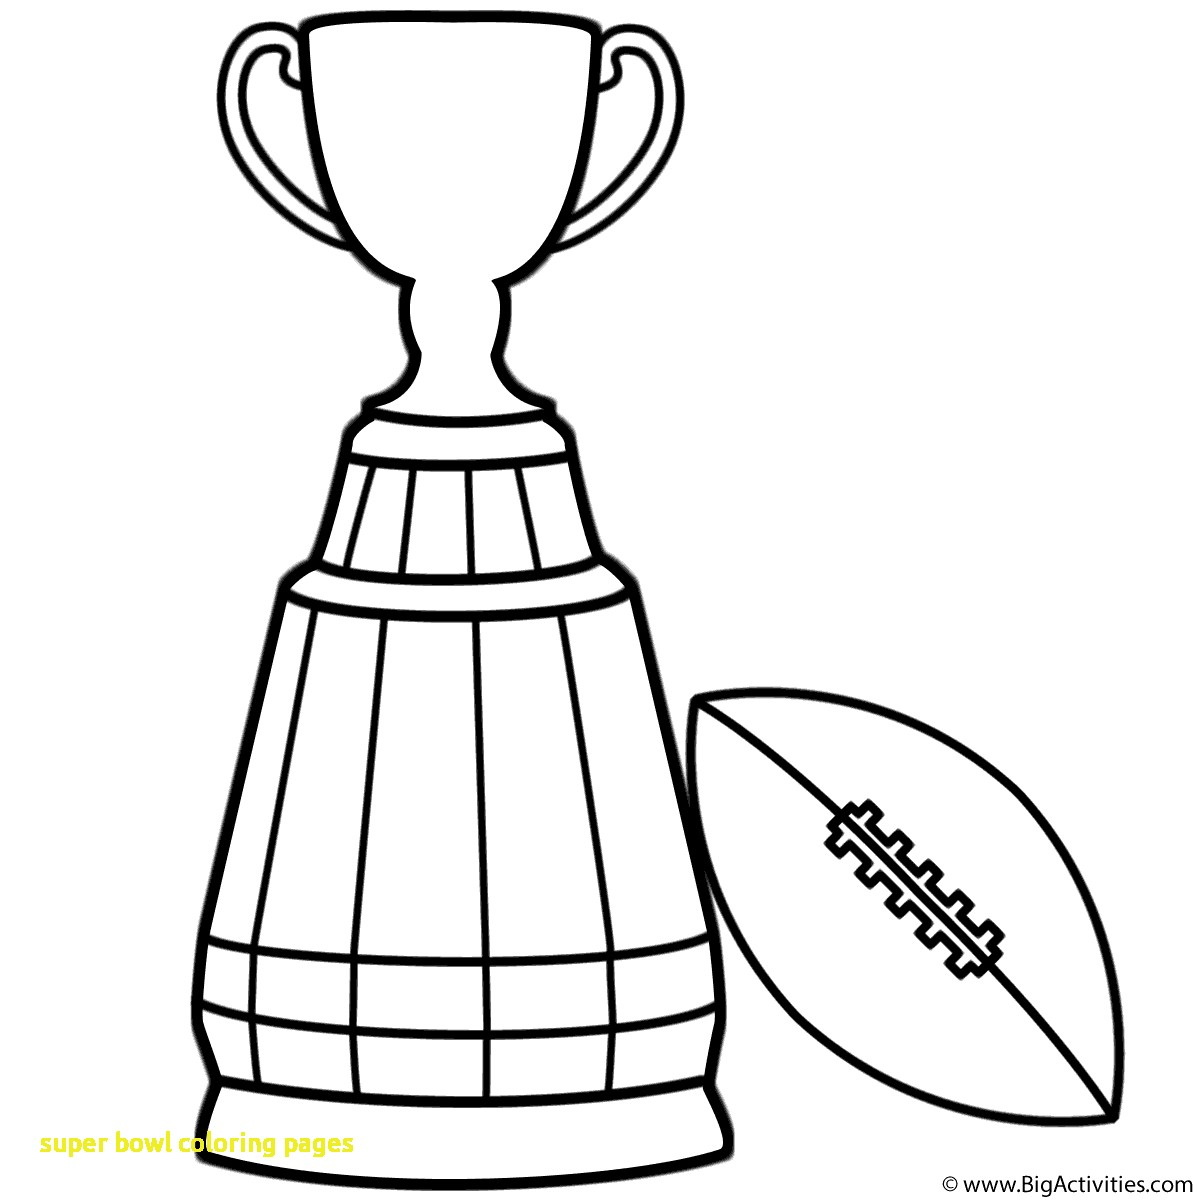 1200x1200 Super Bowl Coloring Pages With Trophy Football